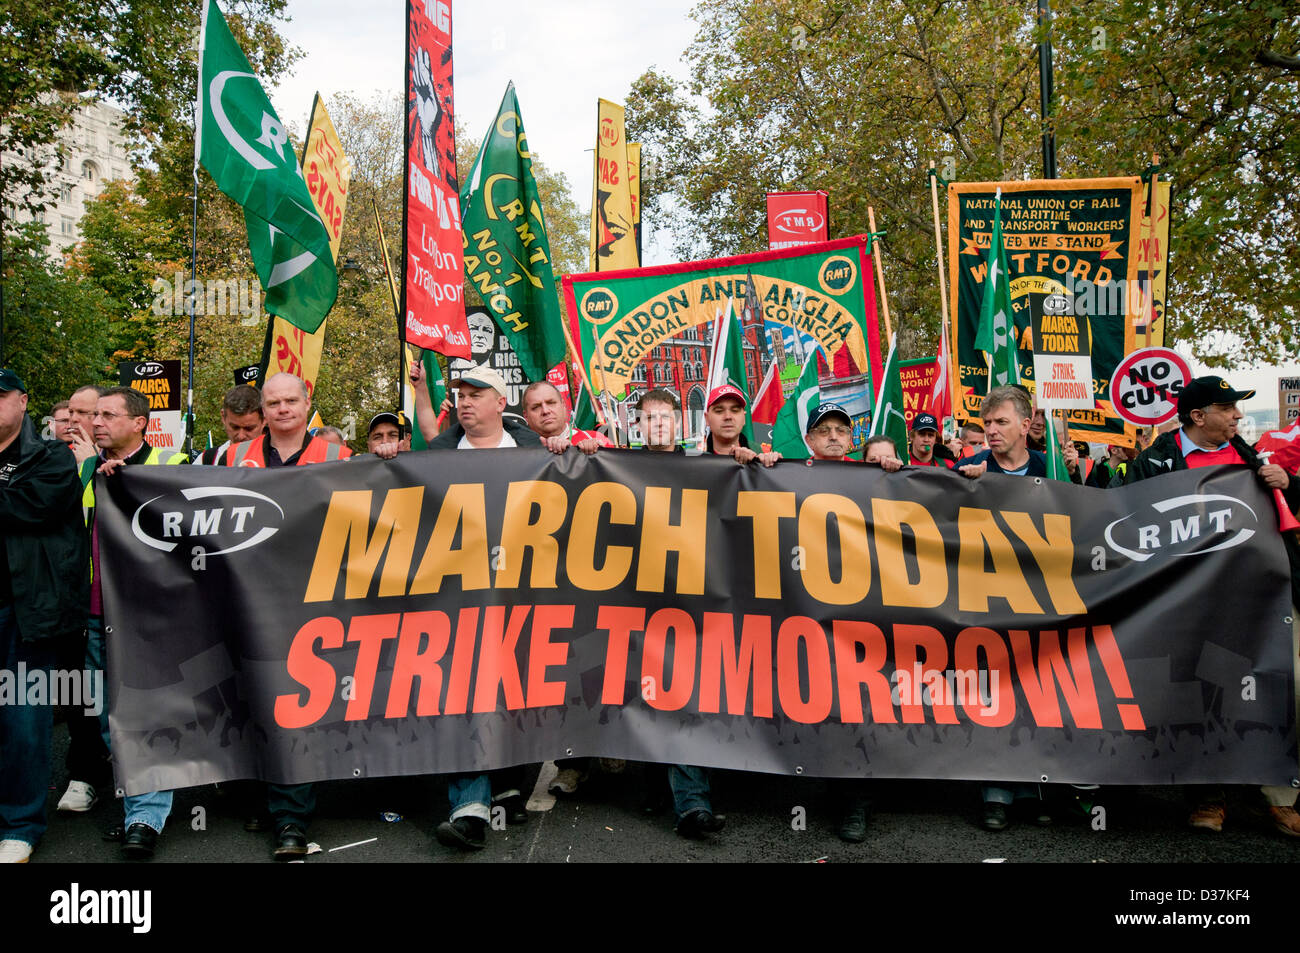 National Union of rail Maritime workers marching through central London  on 20.10.12 - Stock Image